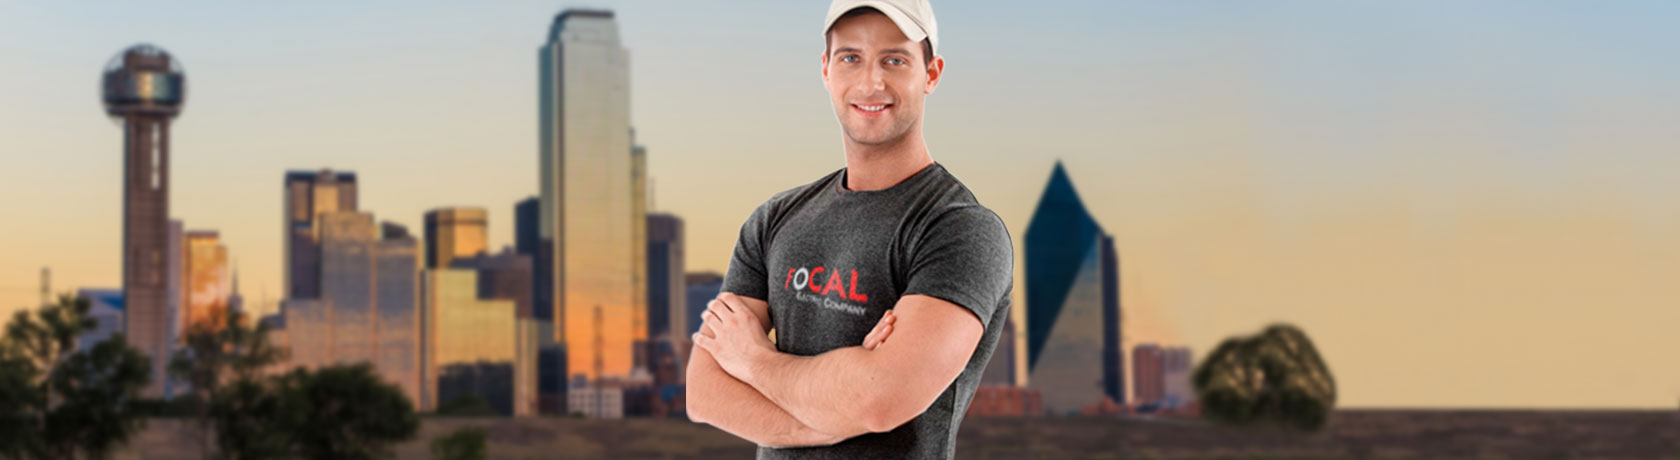 dallas electrical services